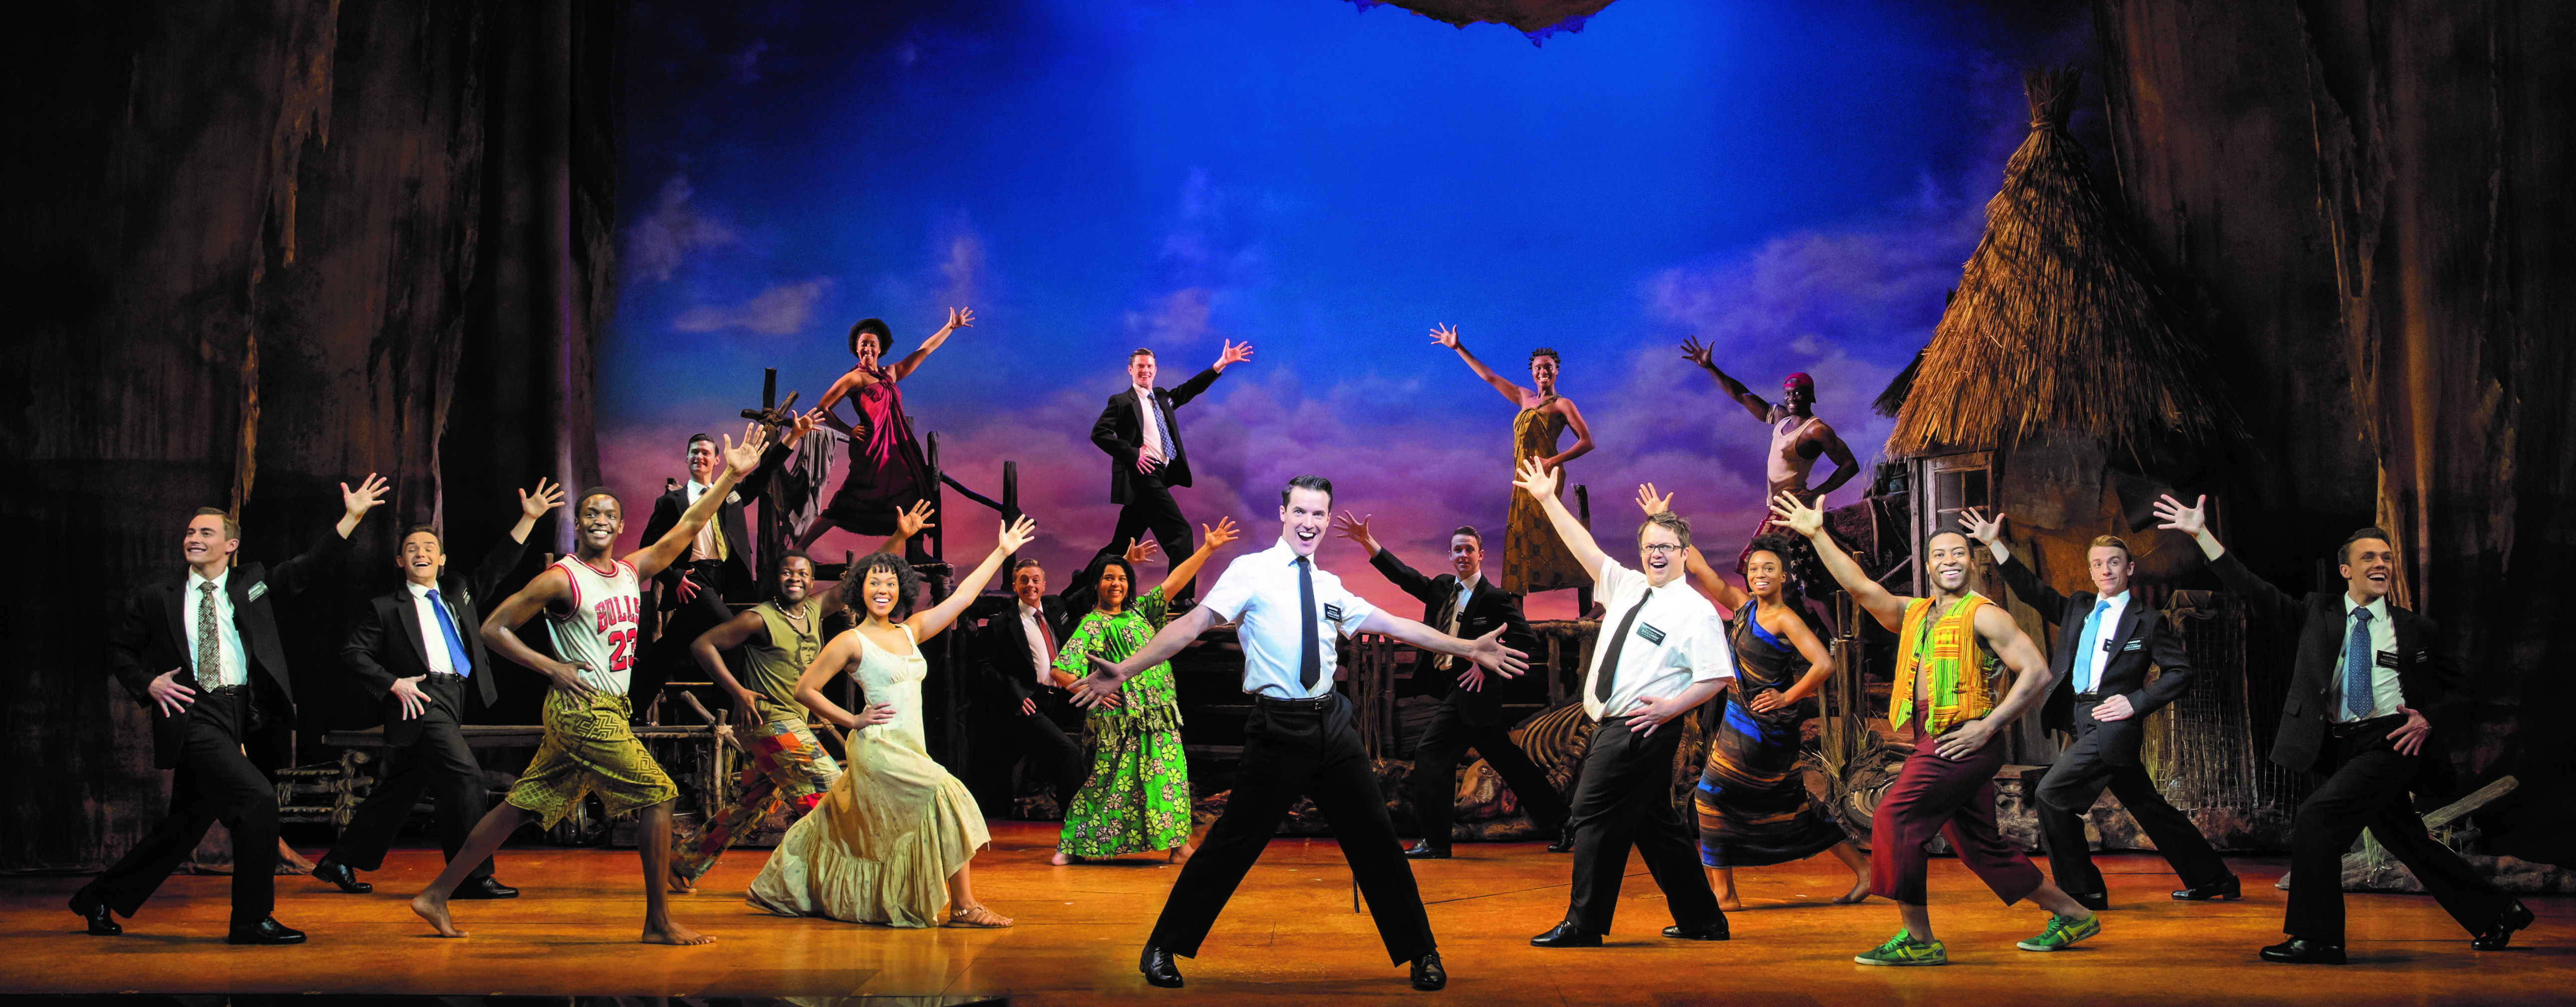 Book of Mormon cast on stage